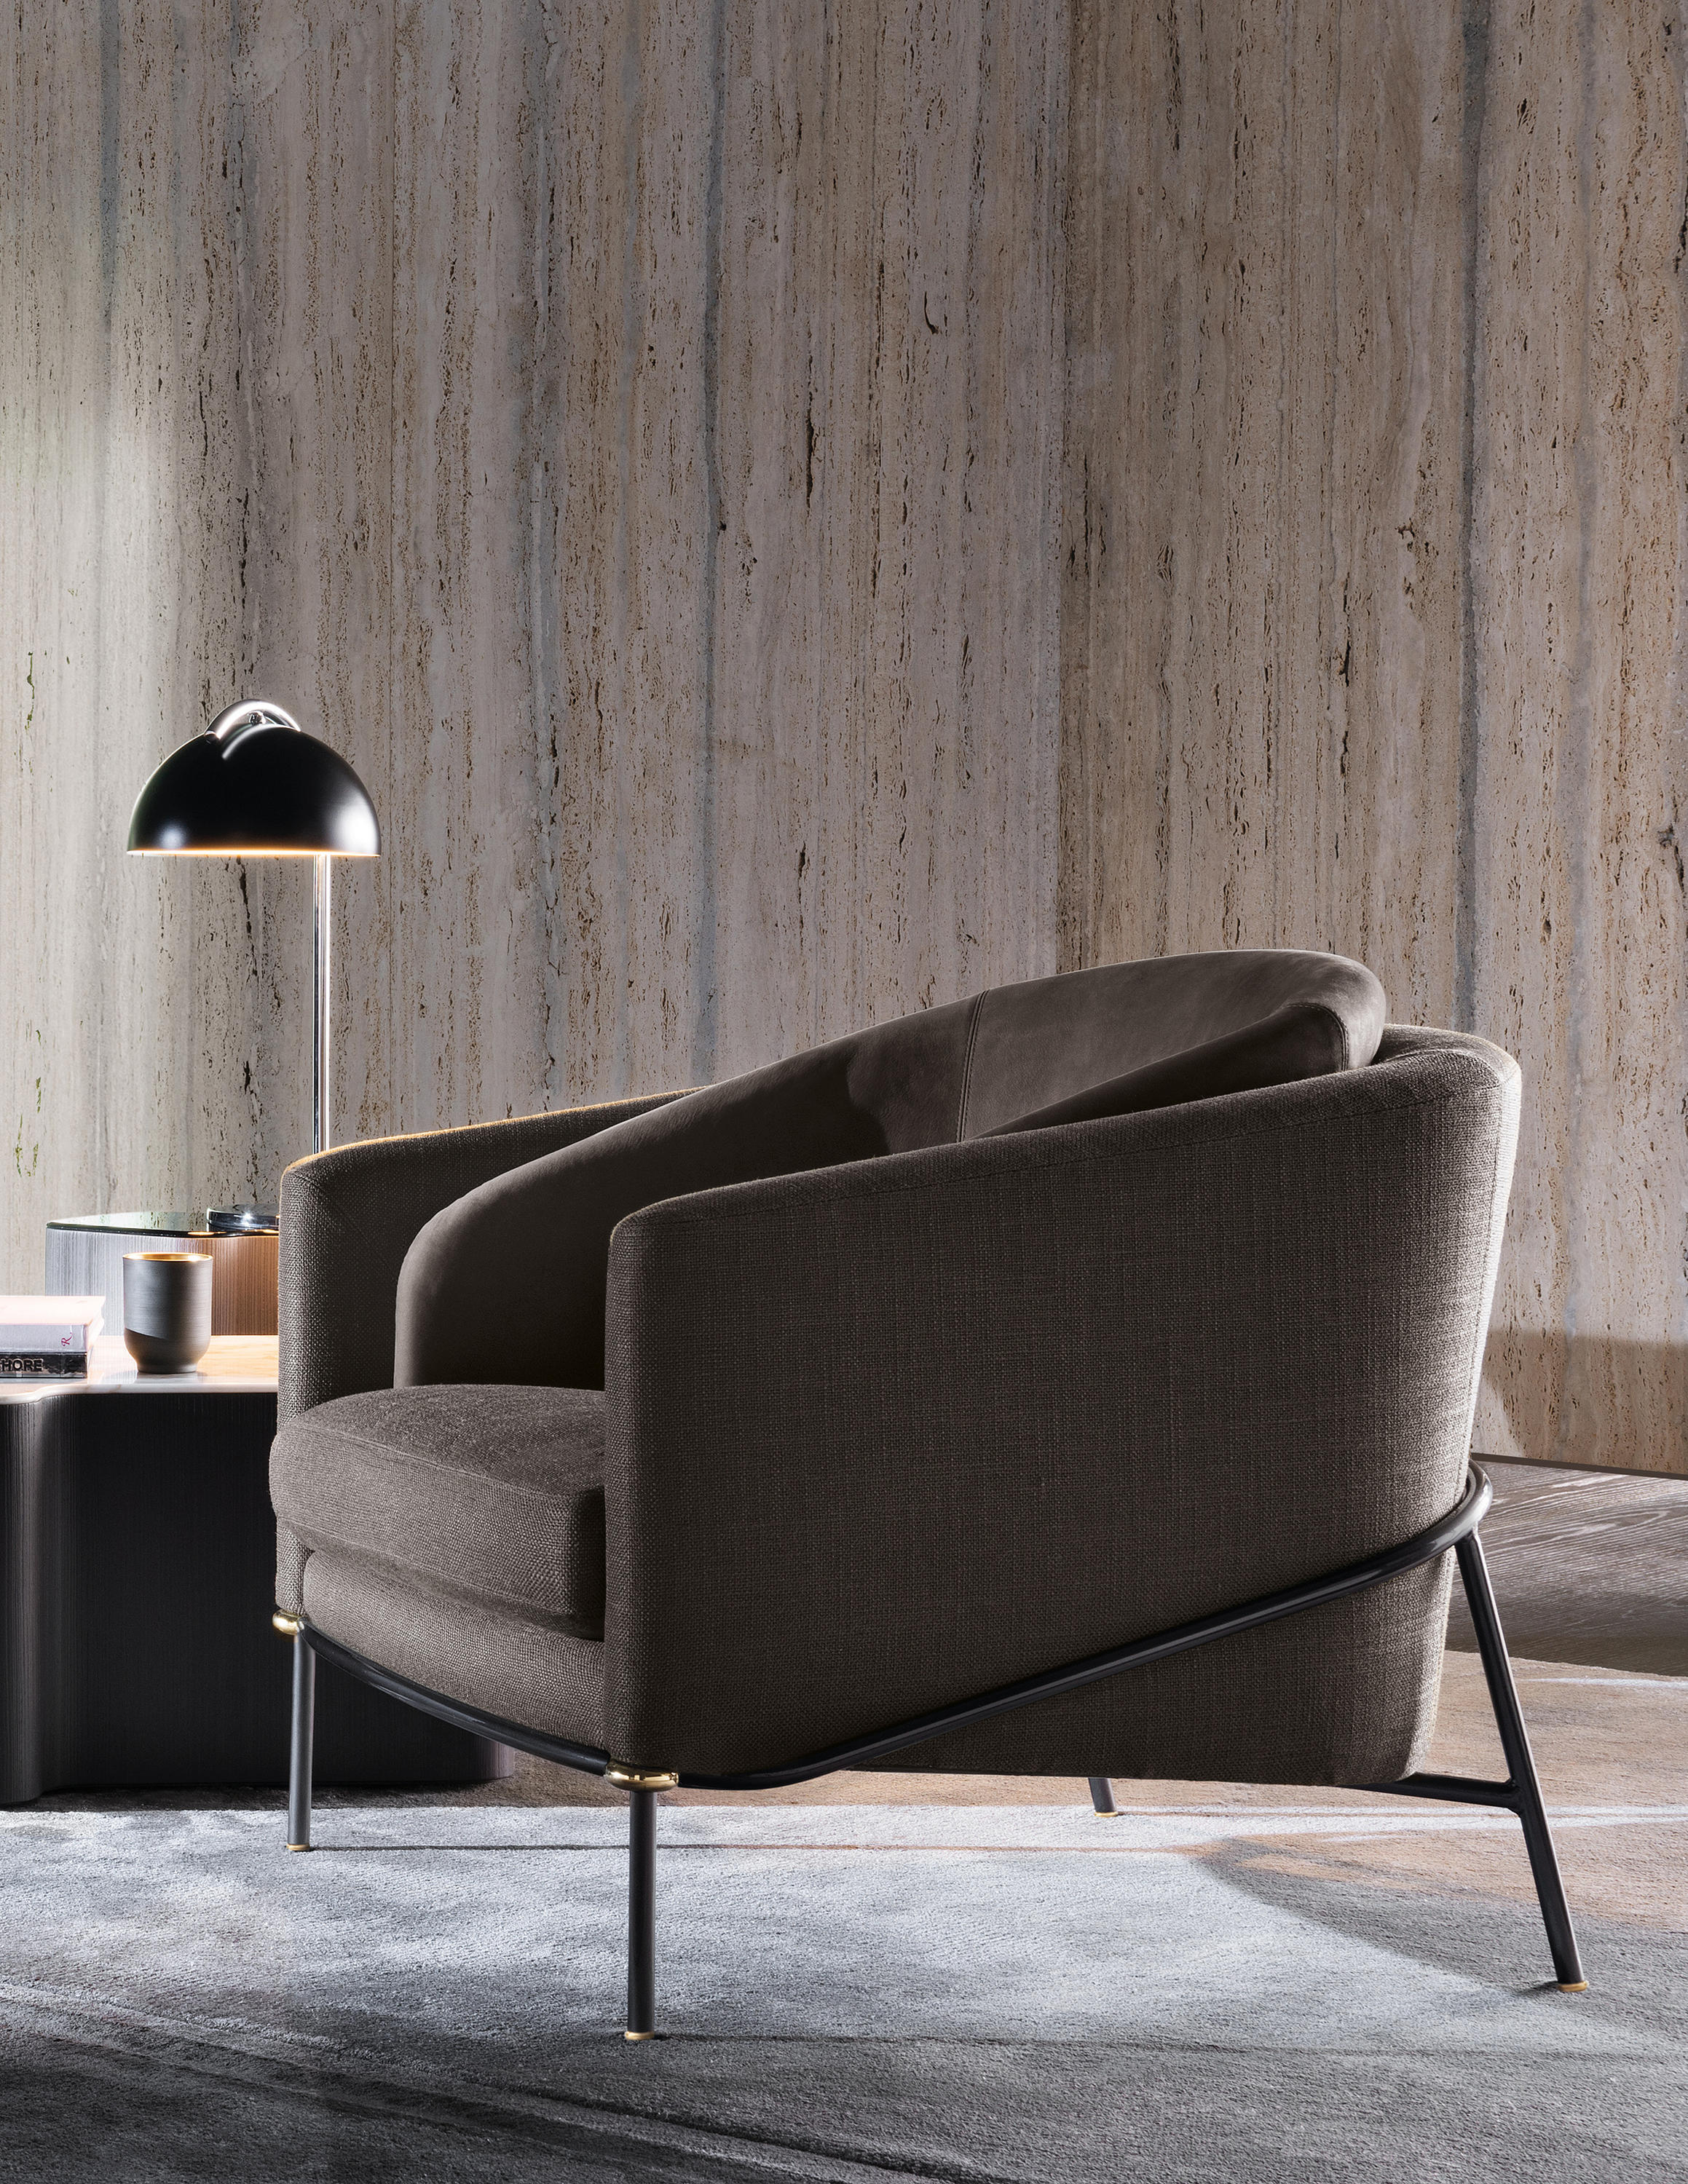 Fil Noir Chair Collection By Christophe Delcourt For Minotti